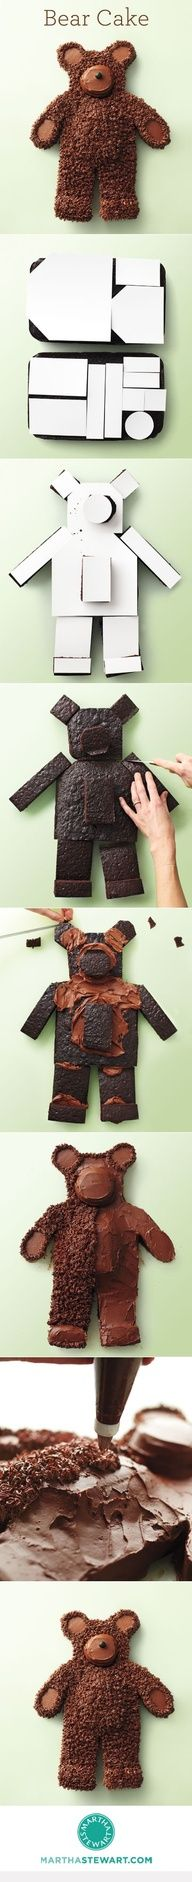 Bear Hugs, ursine chocolate cake gateau ours au chocolat Beautiful Cakes, Amazing Cakes, Decoration Patisserie, Bolo Cake, Bear Cakes, Fondant Figures, Cake Tutorial, Creative Cakes, Creative Food